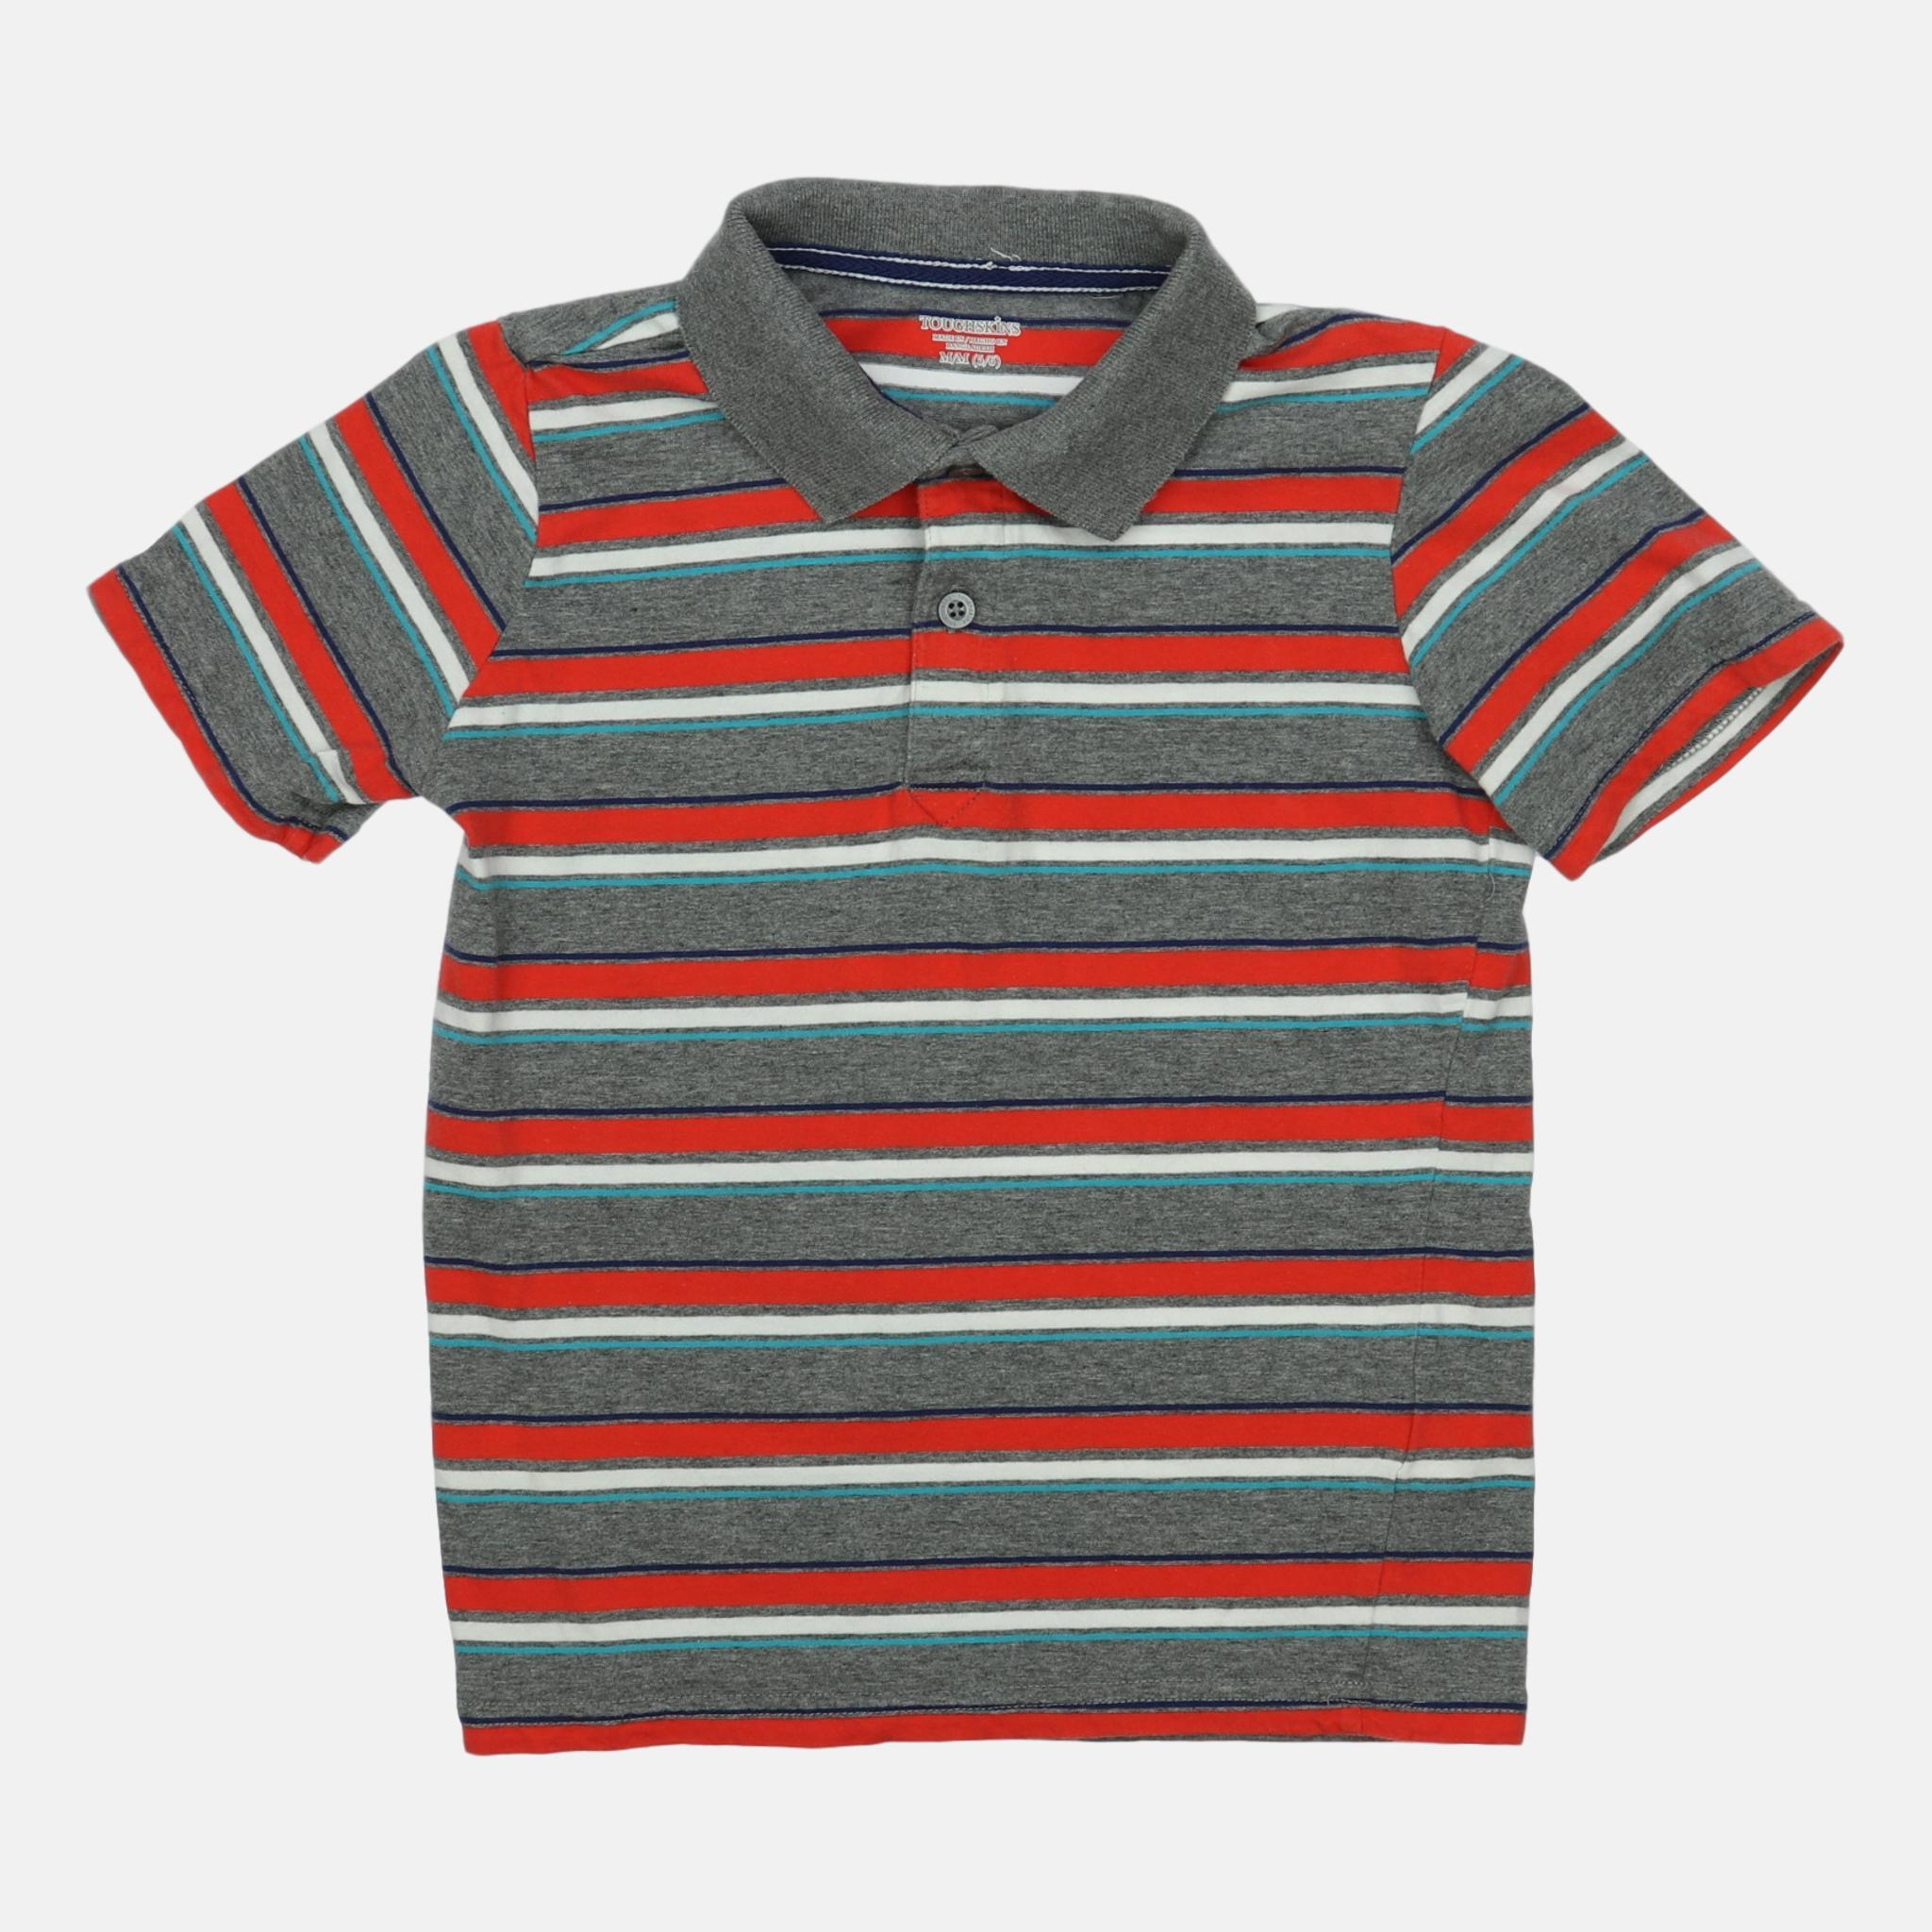 Polo Shirt, 5-6 Years